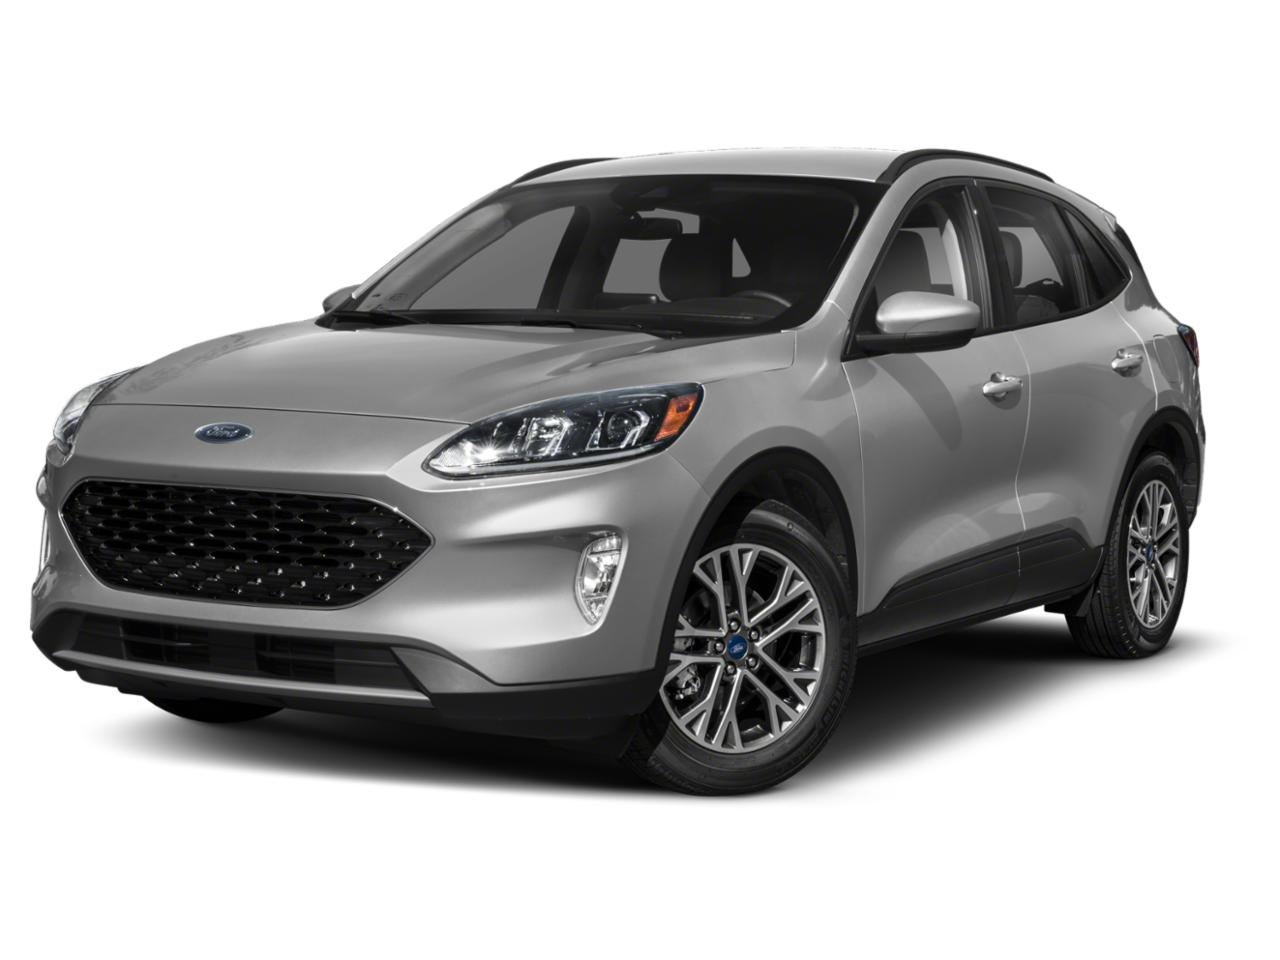 Used 2020 Ford Escape SE with VIN 1FMCU9G67LUA34803 for sale in Two Harbors, Minnesota